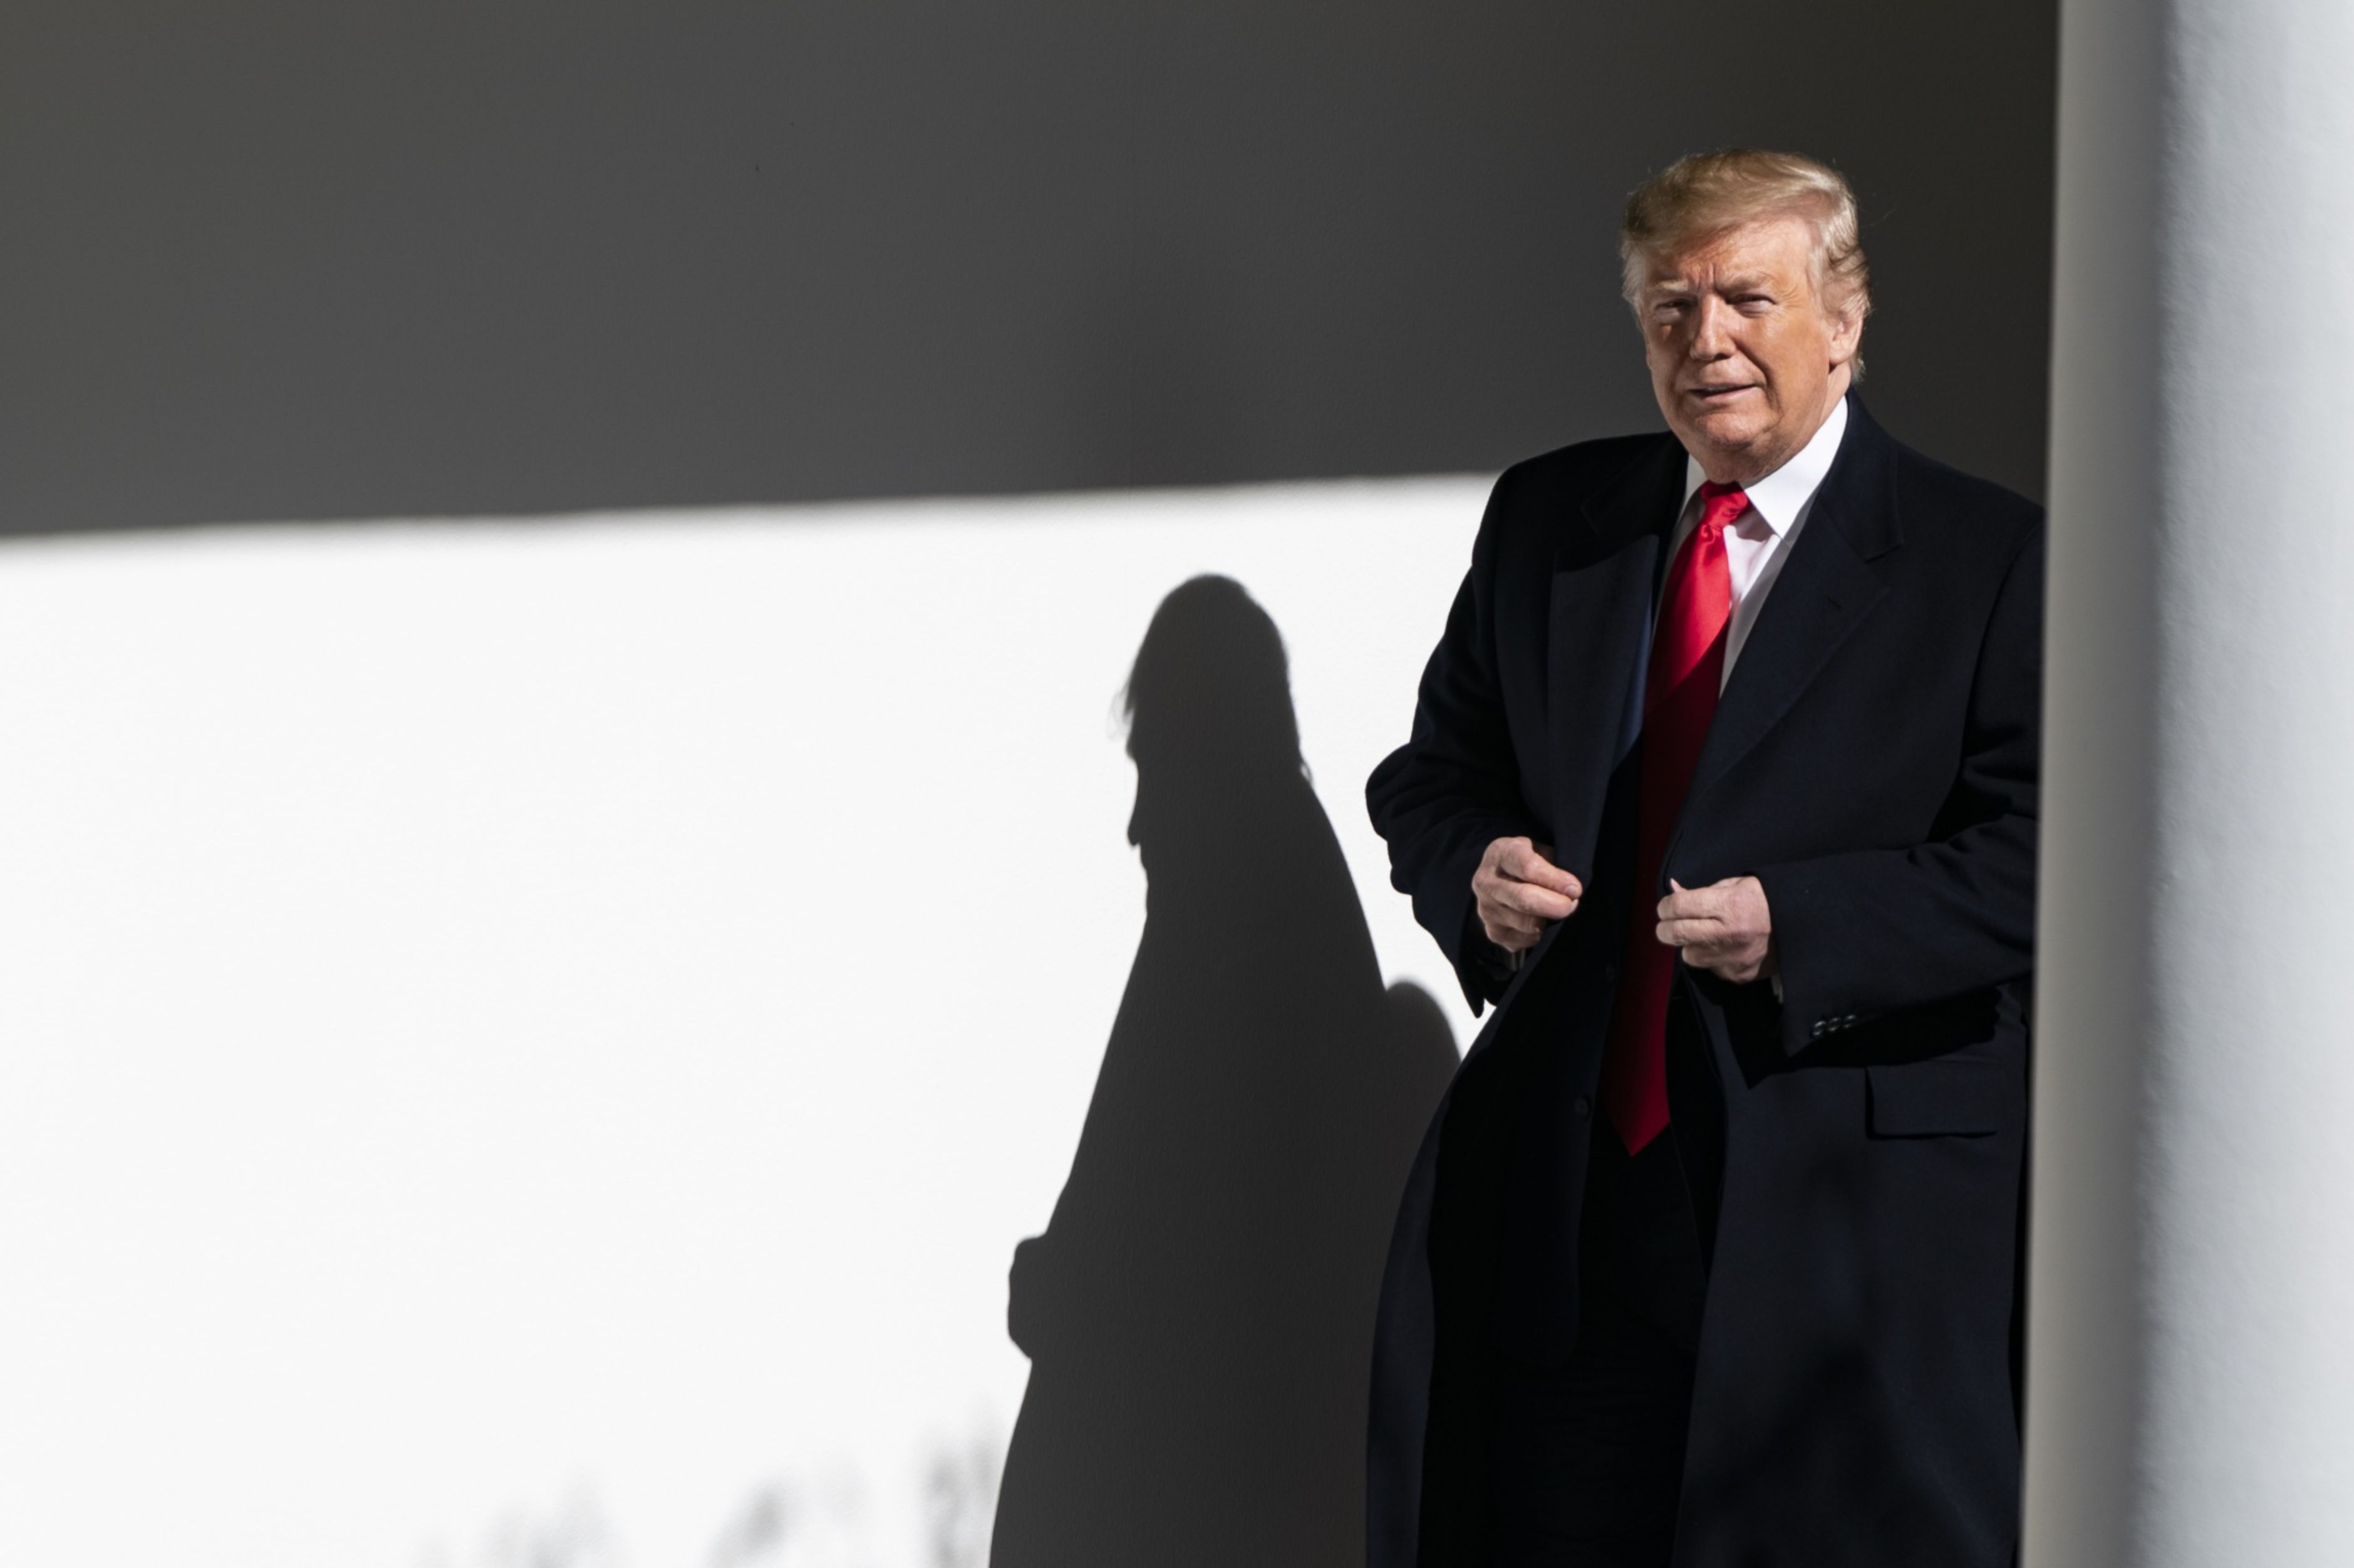 Trump Asks Supreme Court to Block N.Y. Subpoena for Tax Returns